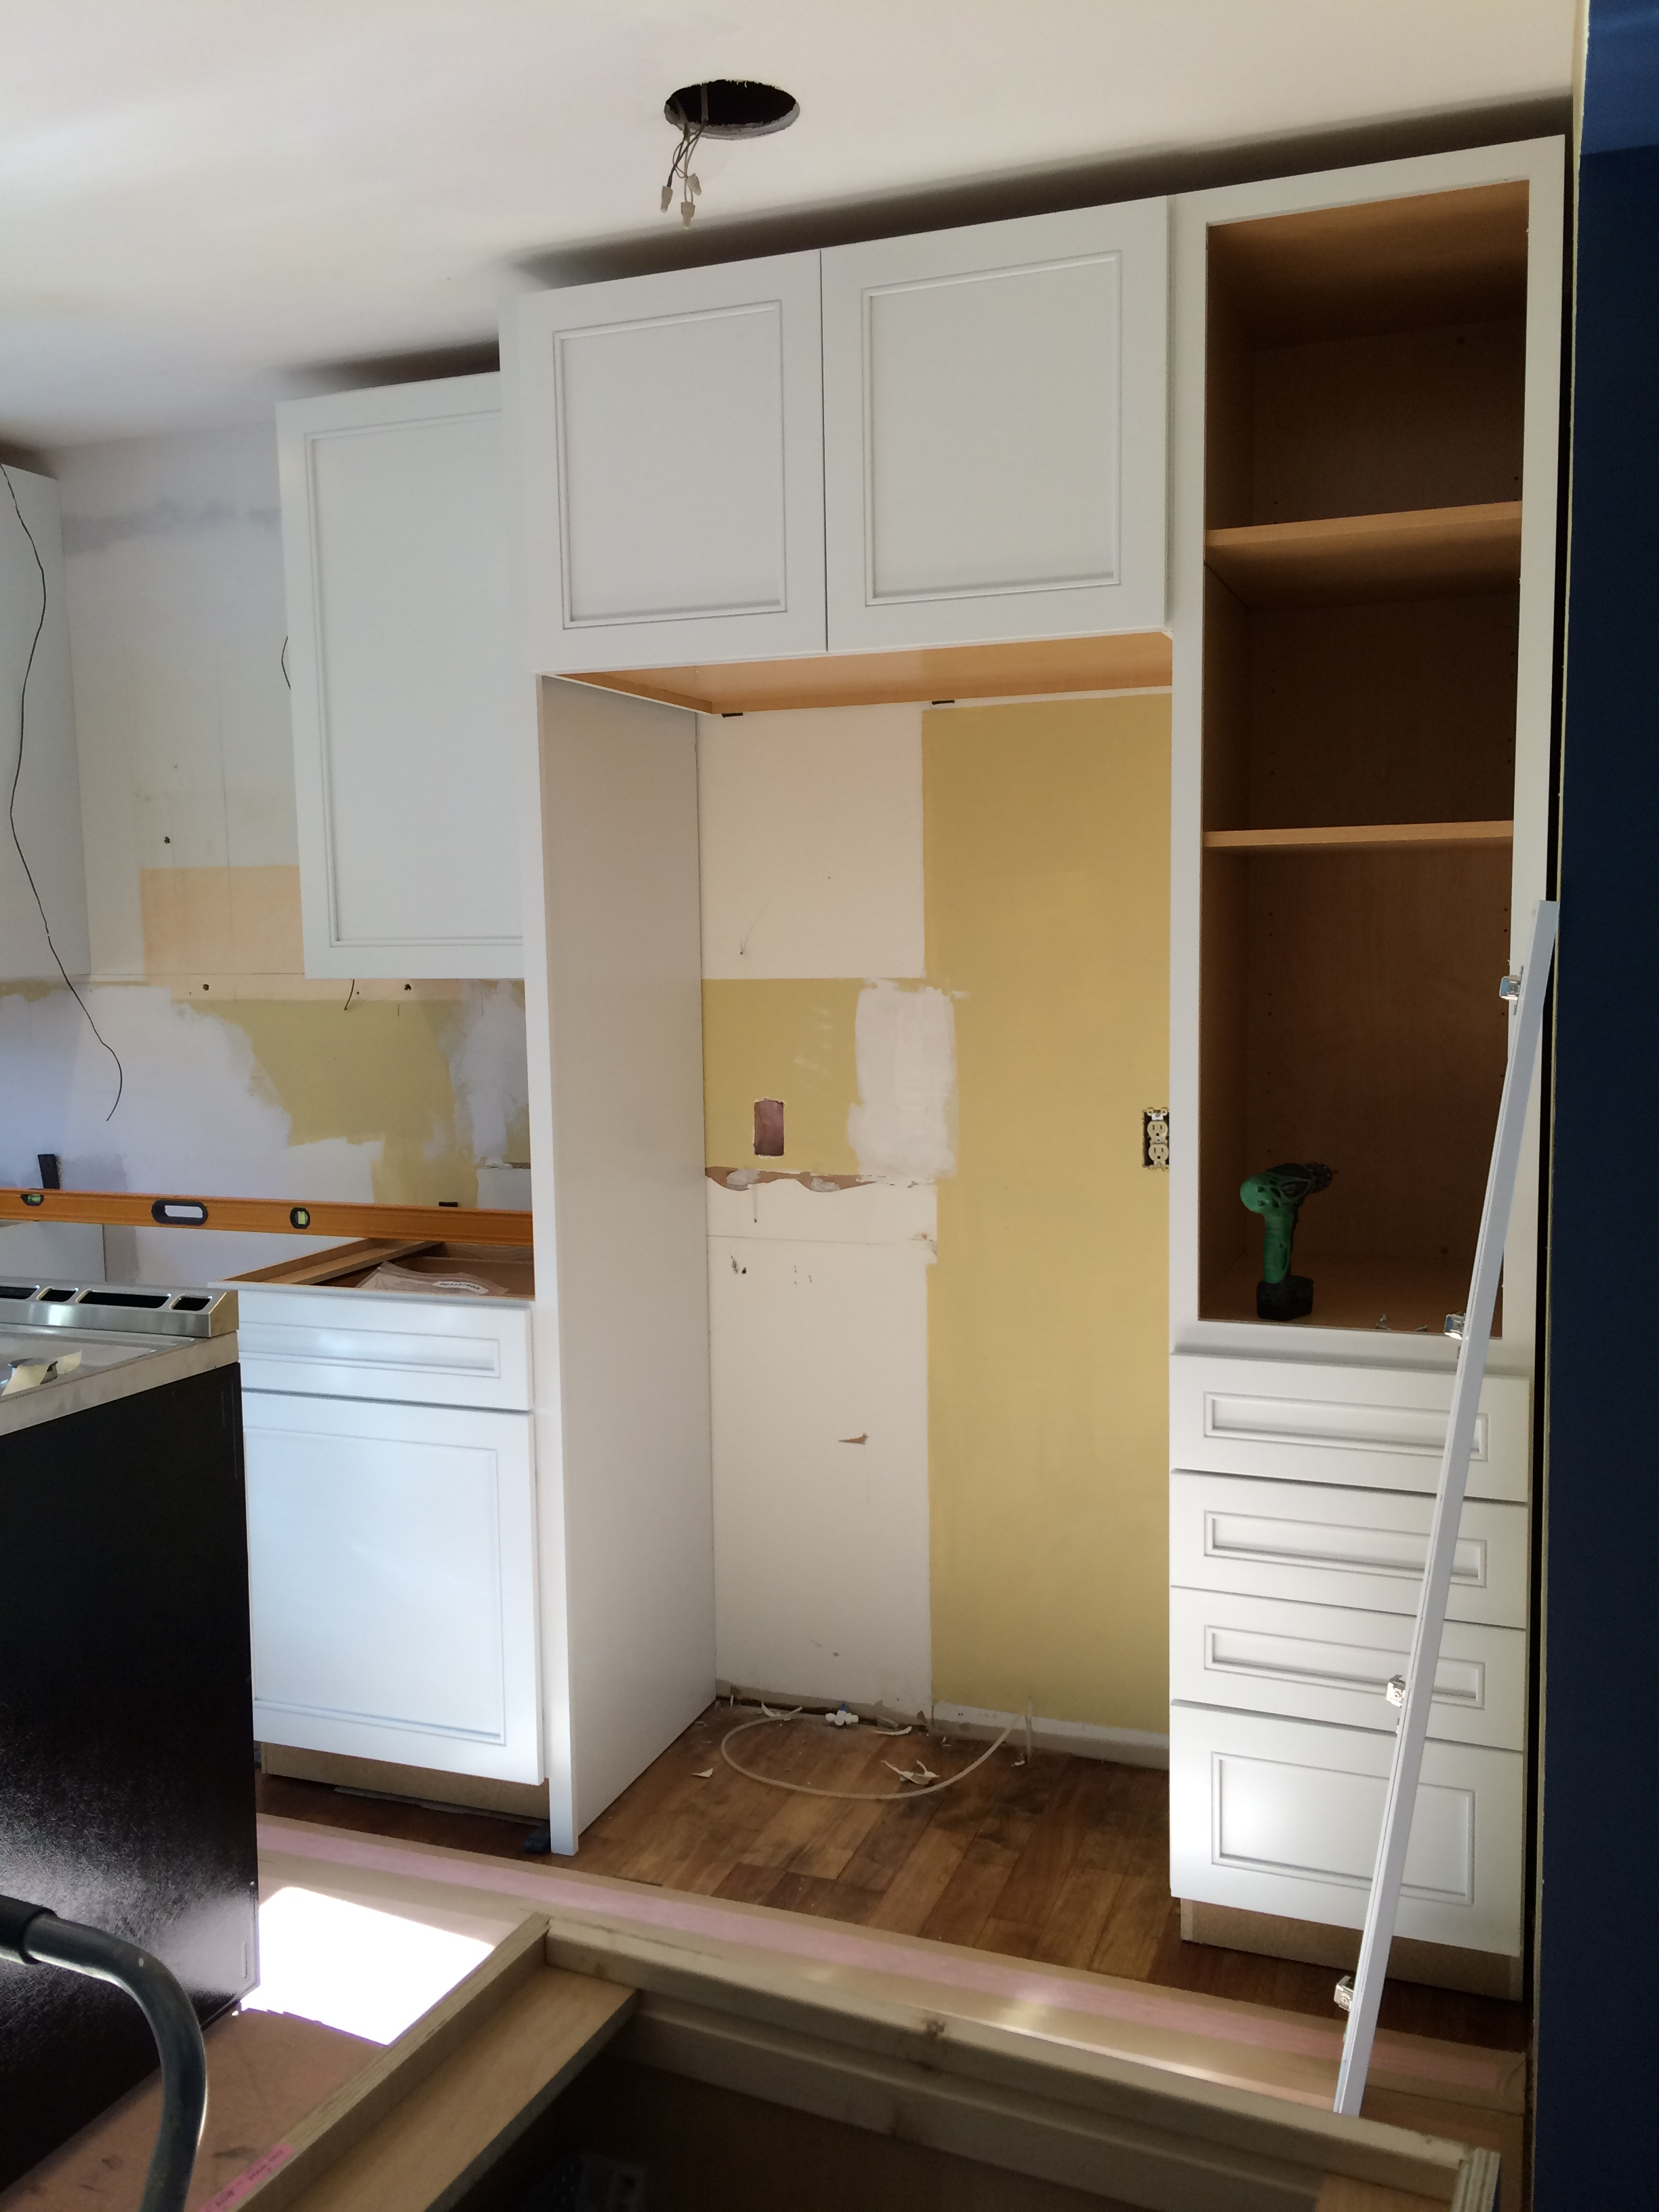 installation help cabinets tos install steady to spaces and how will bathroom kitchen diy step rooms jack cabinet